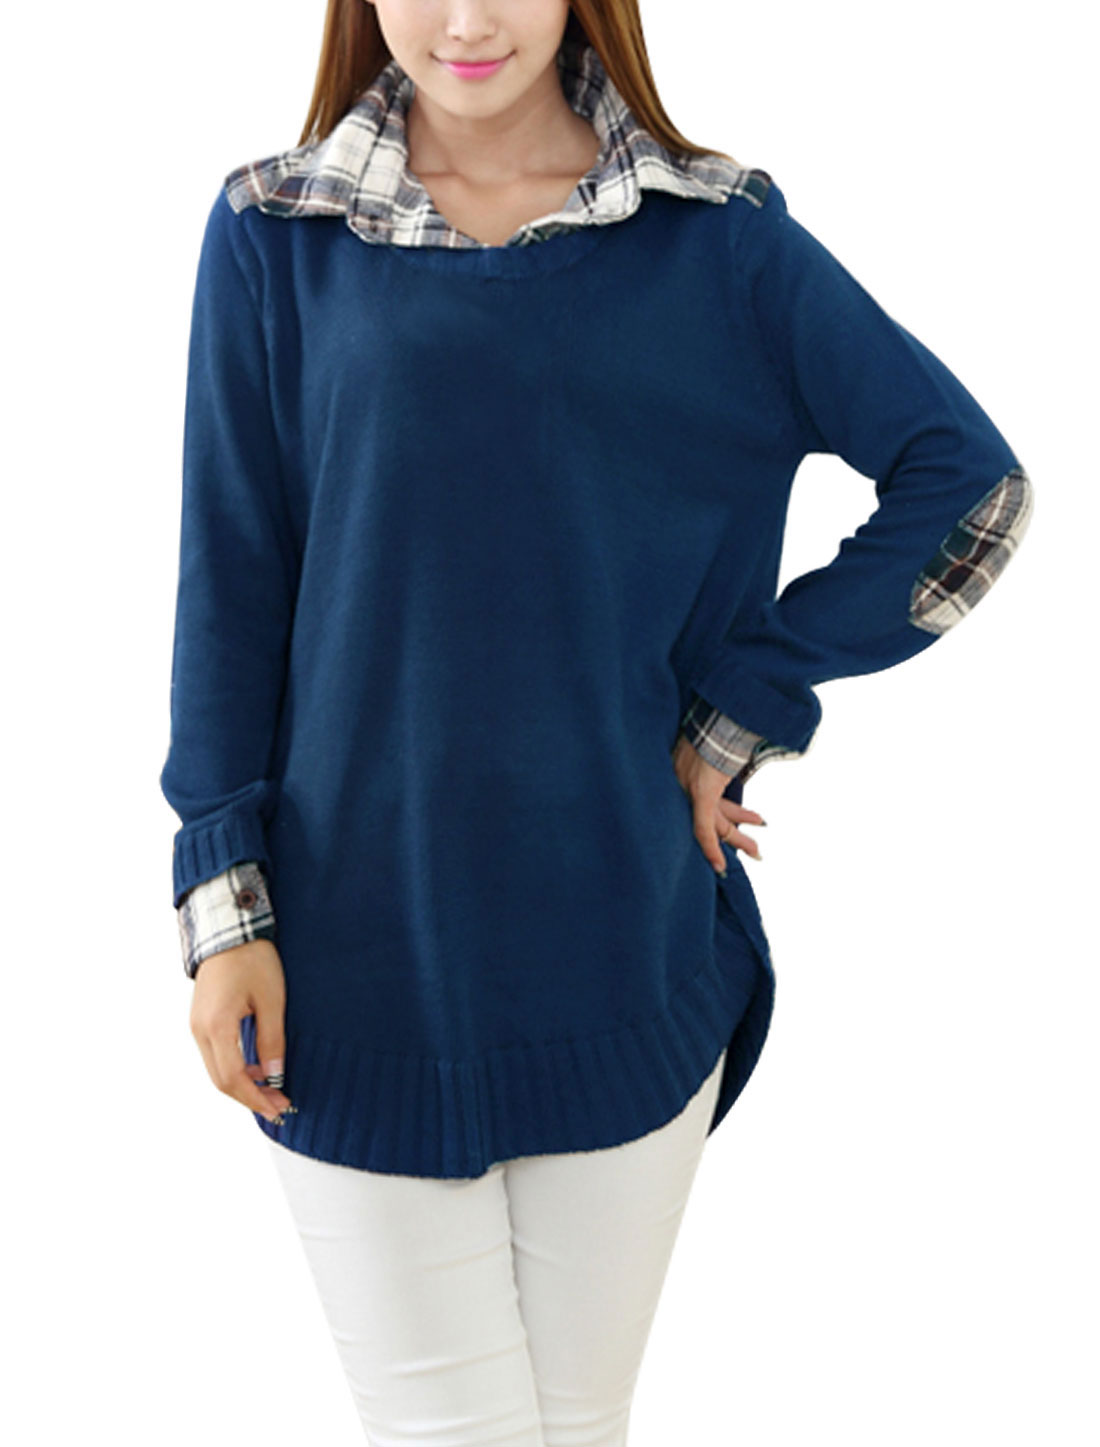 Ladies Long Sleeves Layered Navy Blue Tunic Sweater M